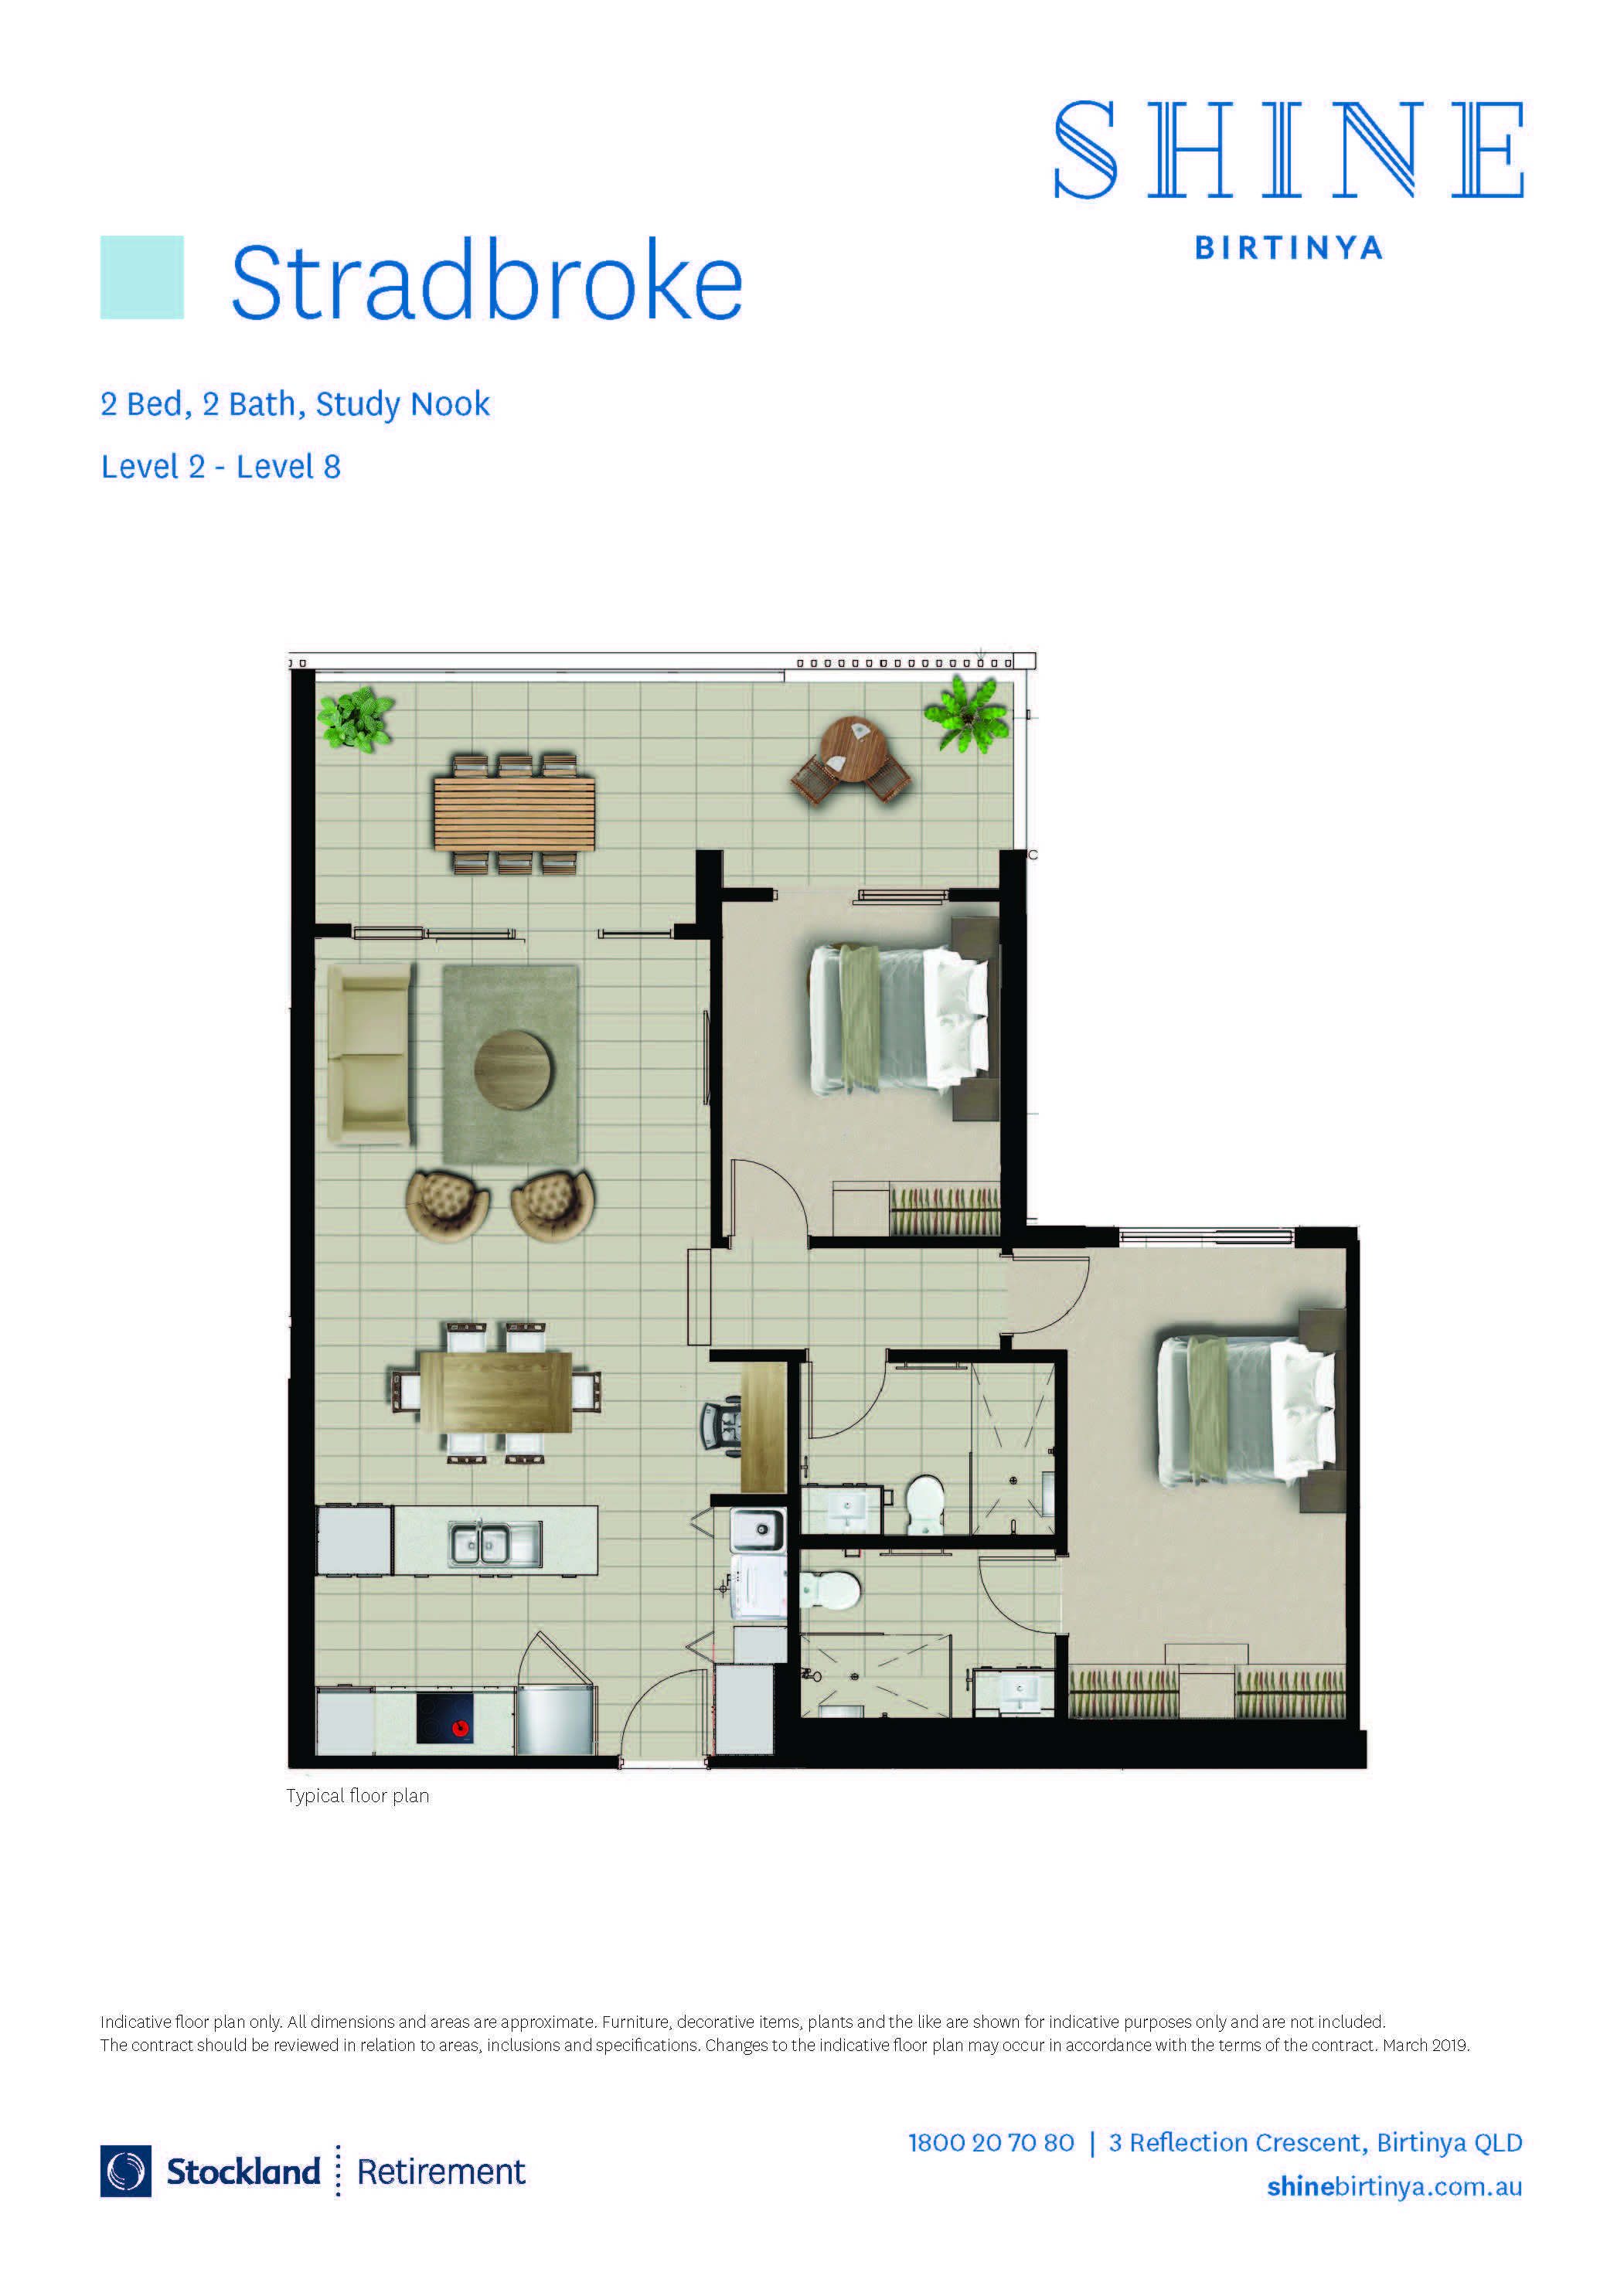 Floorplan of the Stradbroke Design with 2 Bed 2 Bath